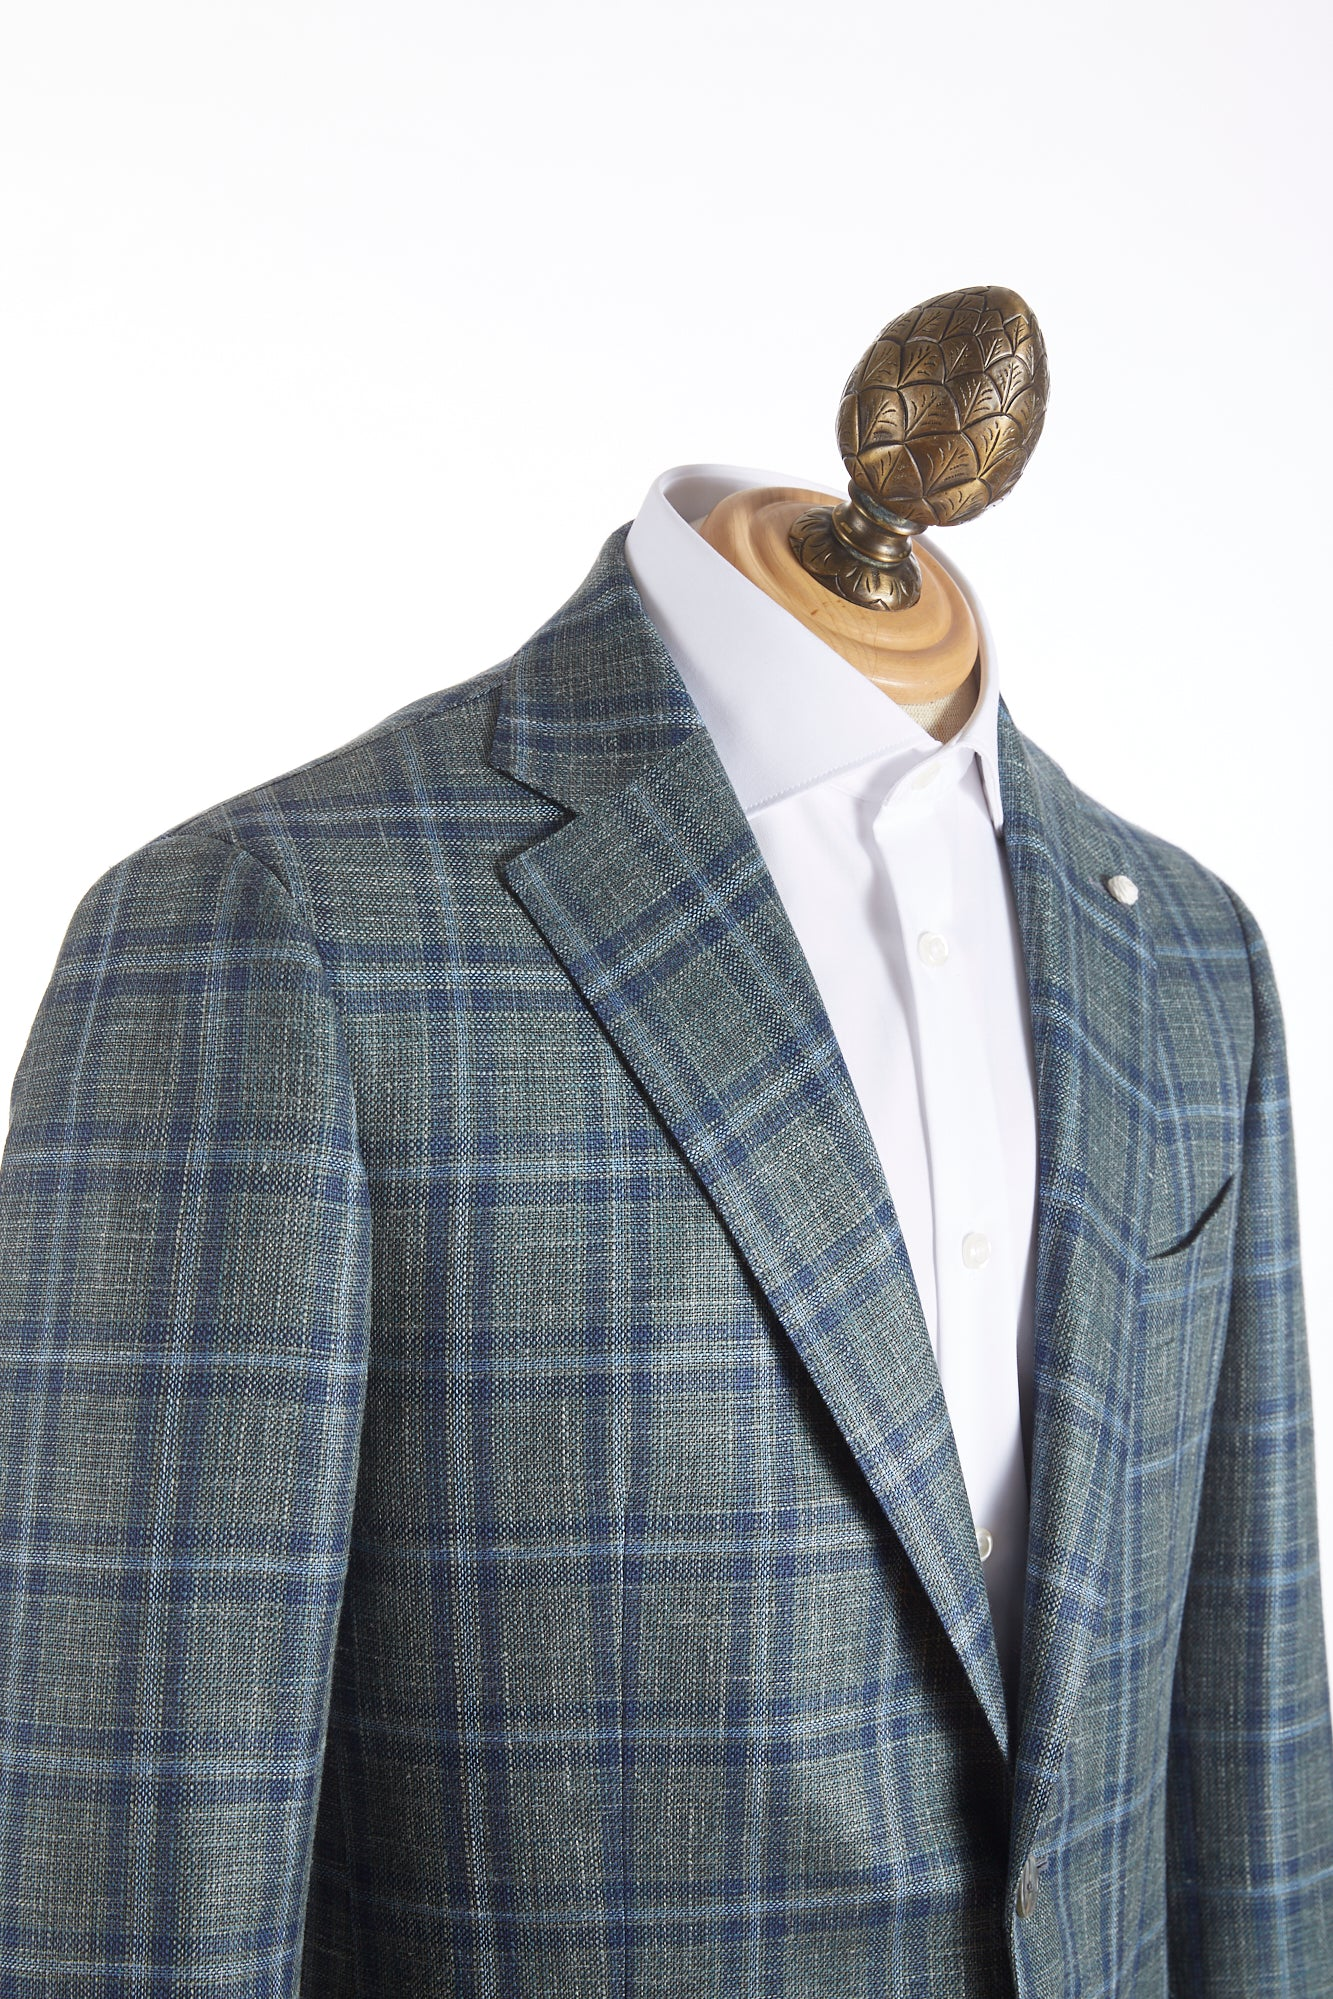 Luigi Bianchi Mantova Green Windowpane Loro Piana Sport Jacket Side